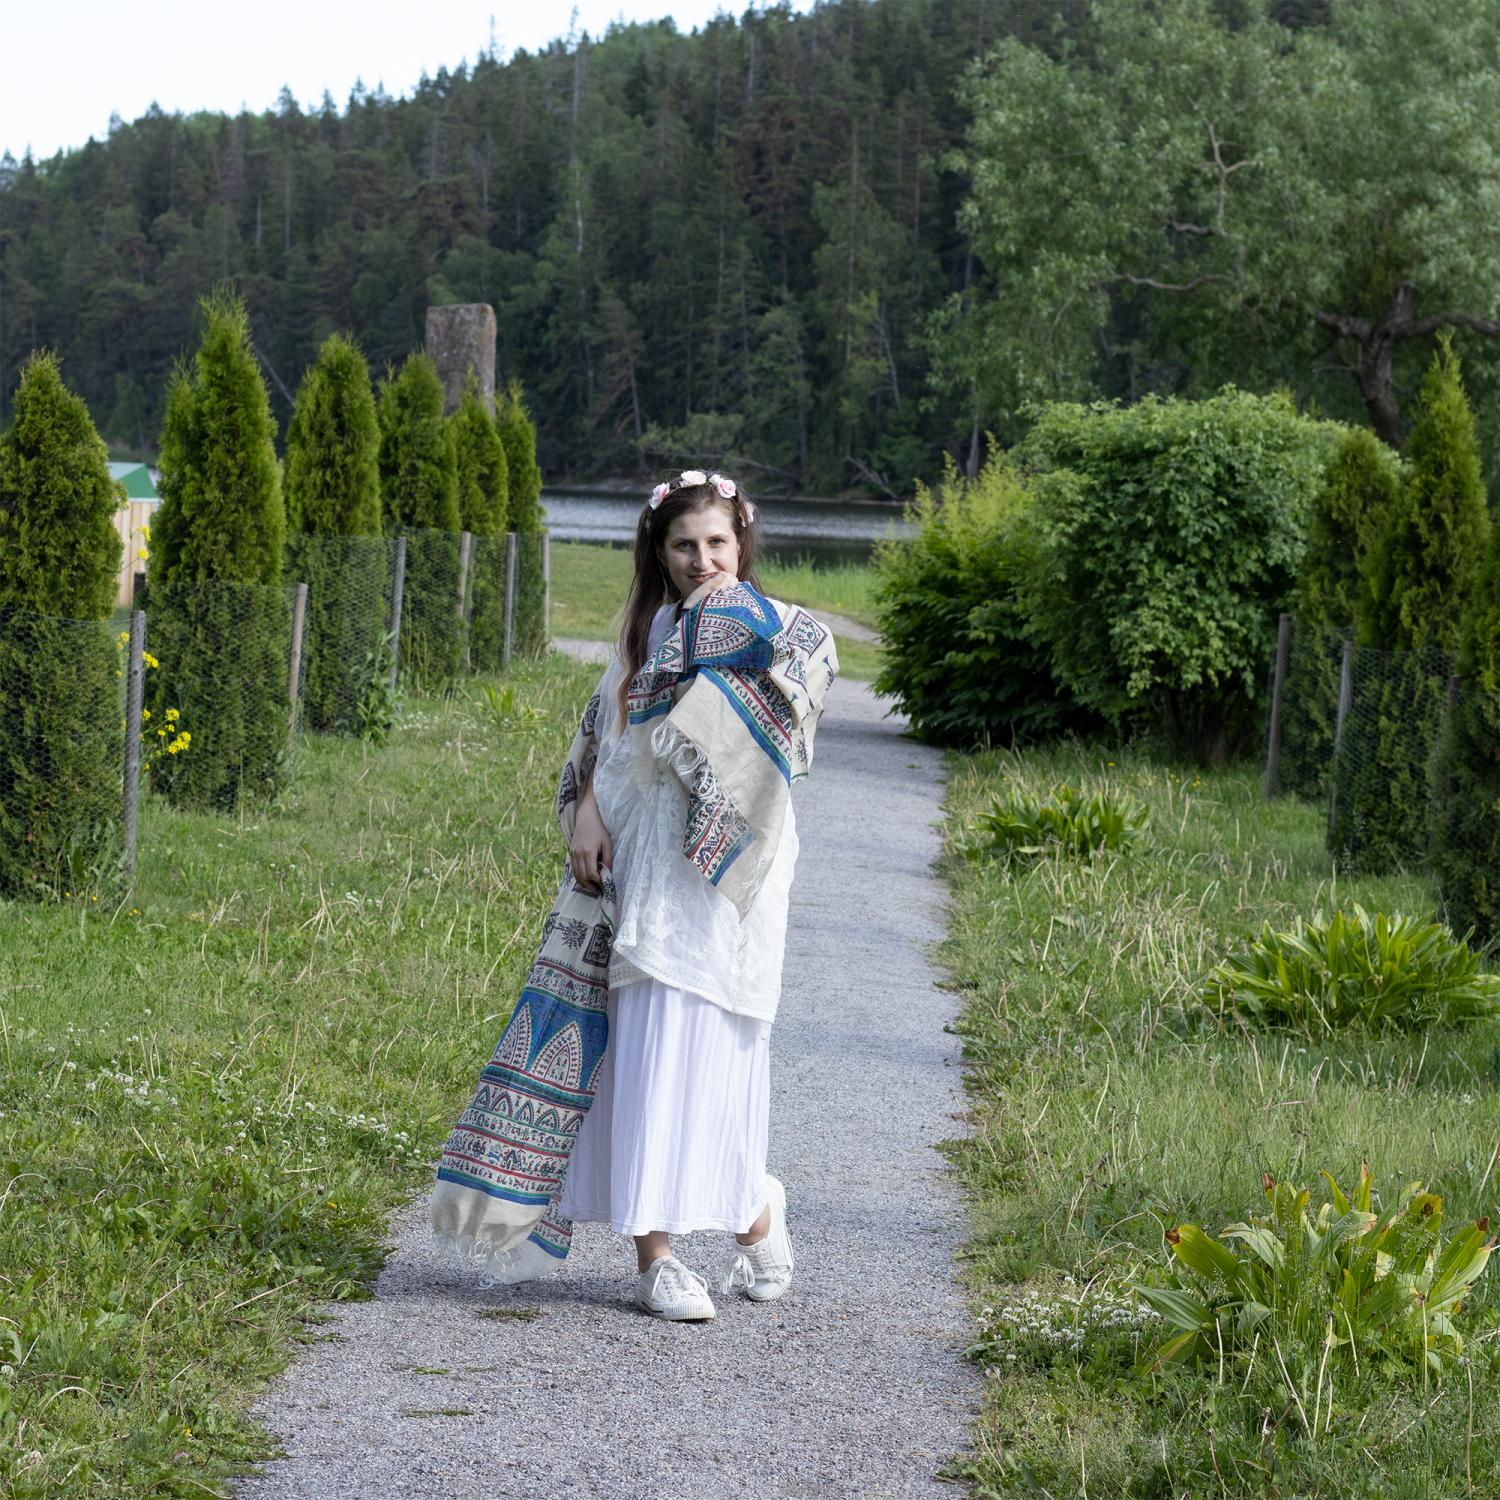 Woman in a white clothes on a path in a green park wearing a shawl blue shawl with tribal pattern and light pink wreath on her head